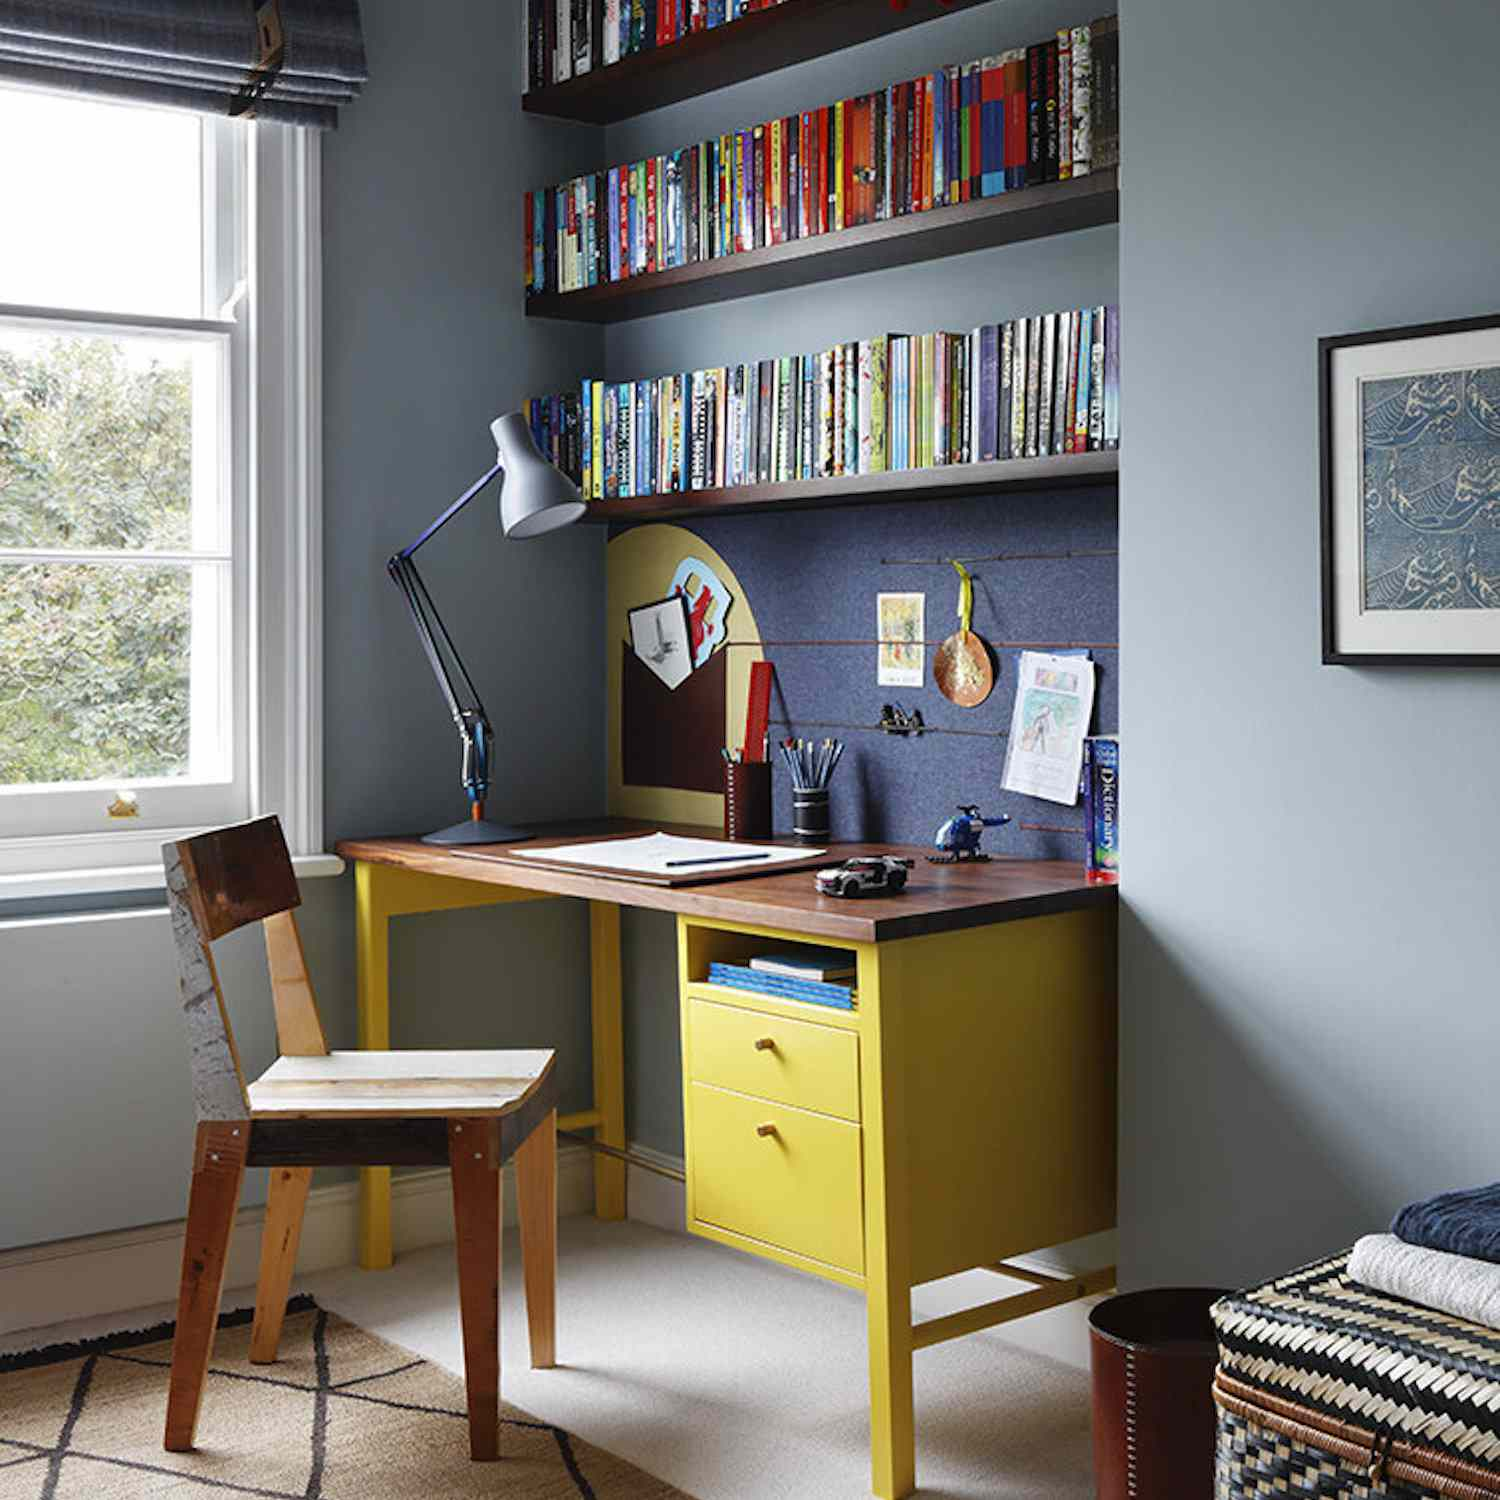 bedroom with study nook, yellow desk with blue walls, bookshelves